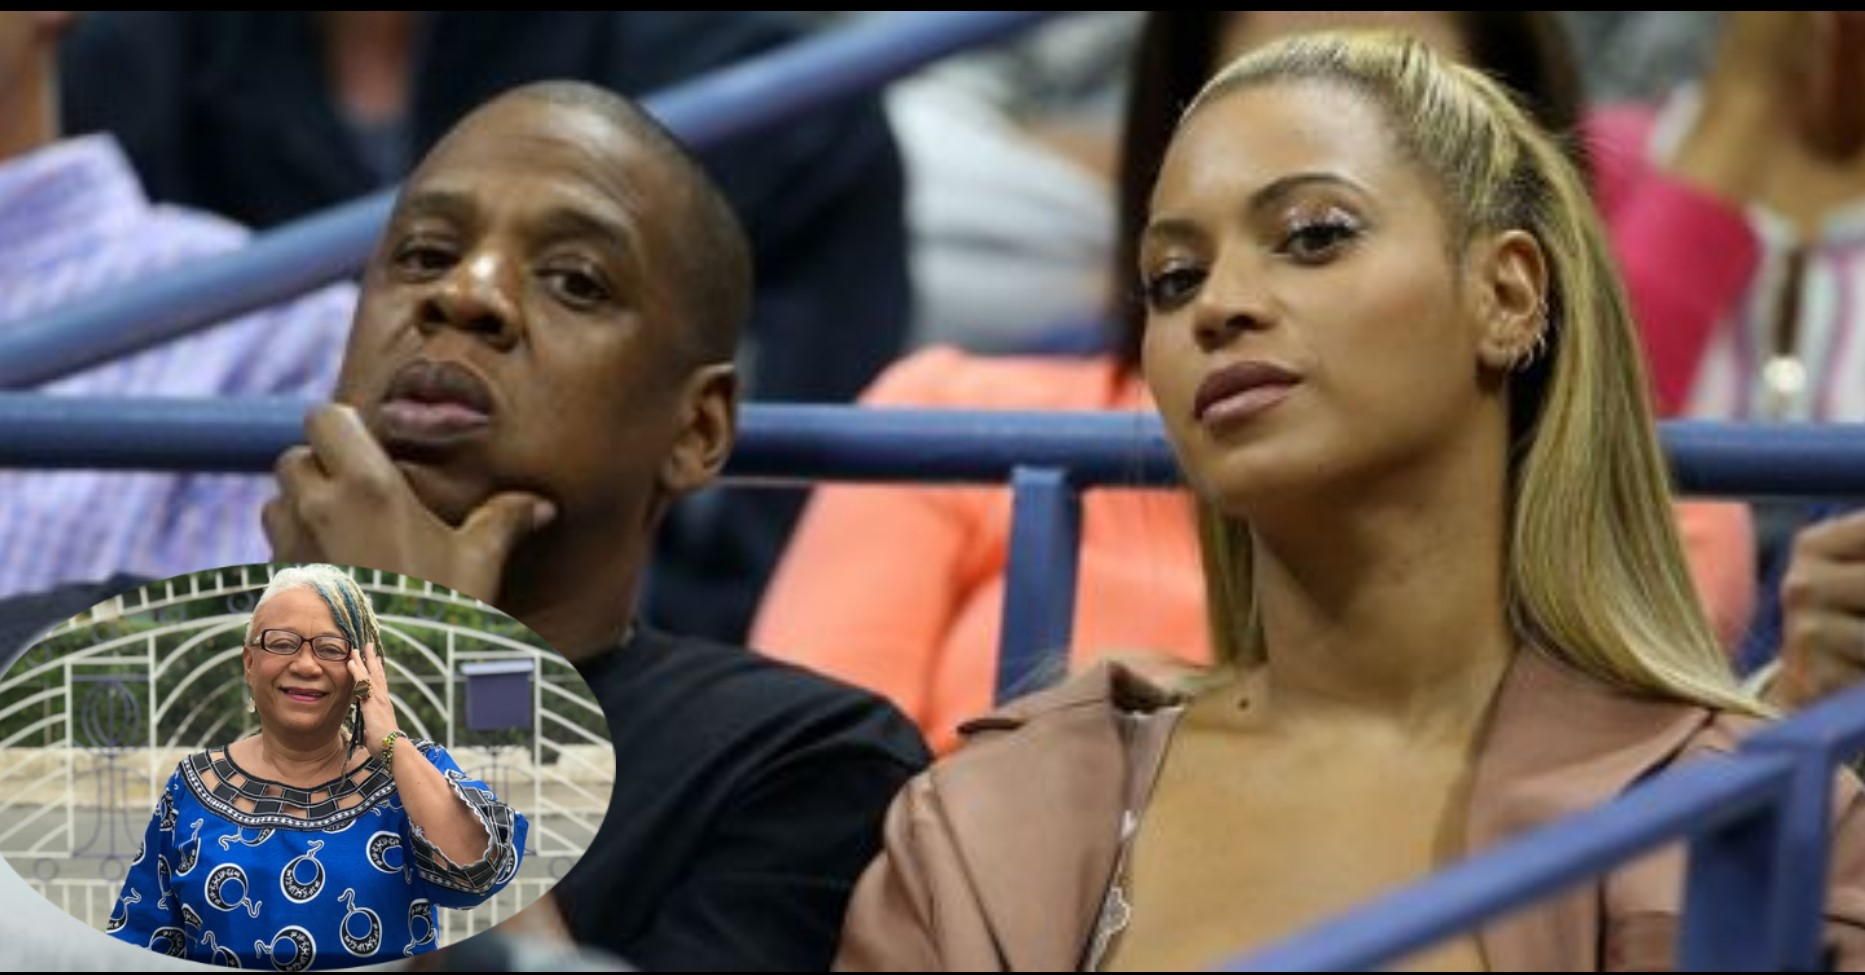 Jay-Z and Beyonce are facing a federal copyright infringement lawsuit from Dr L'Antoinette Stines